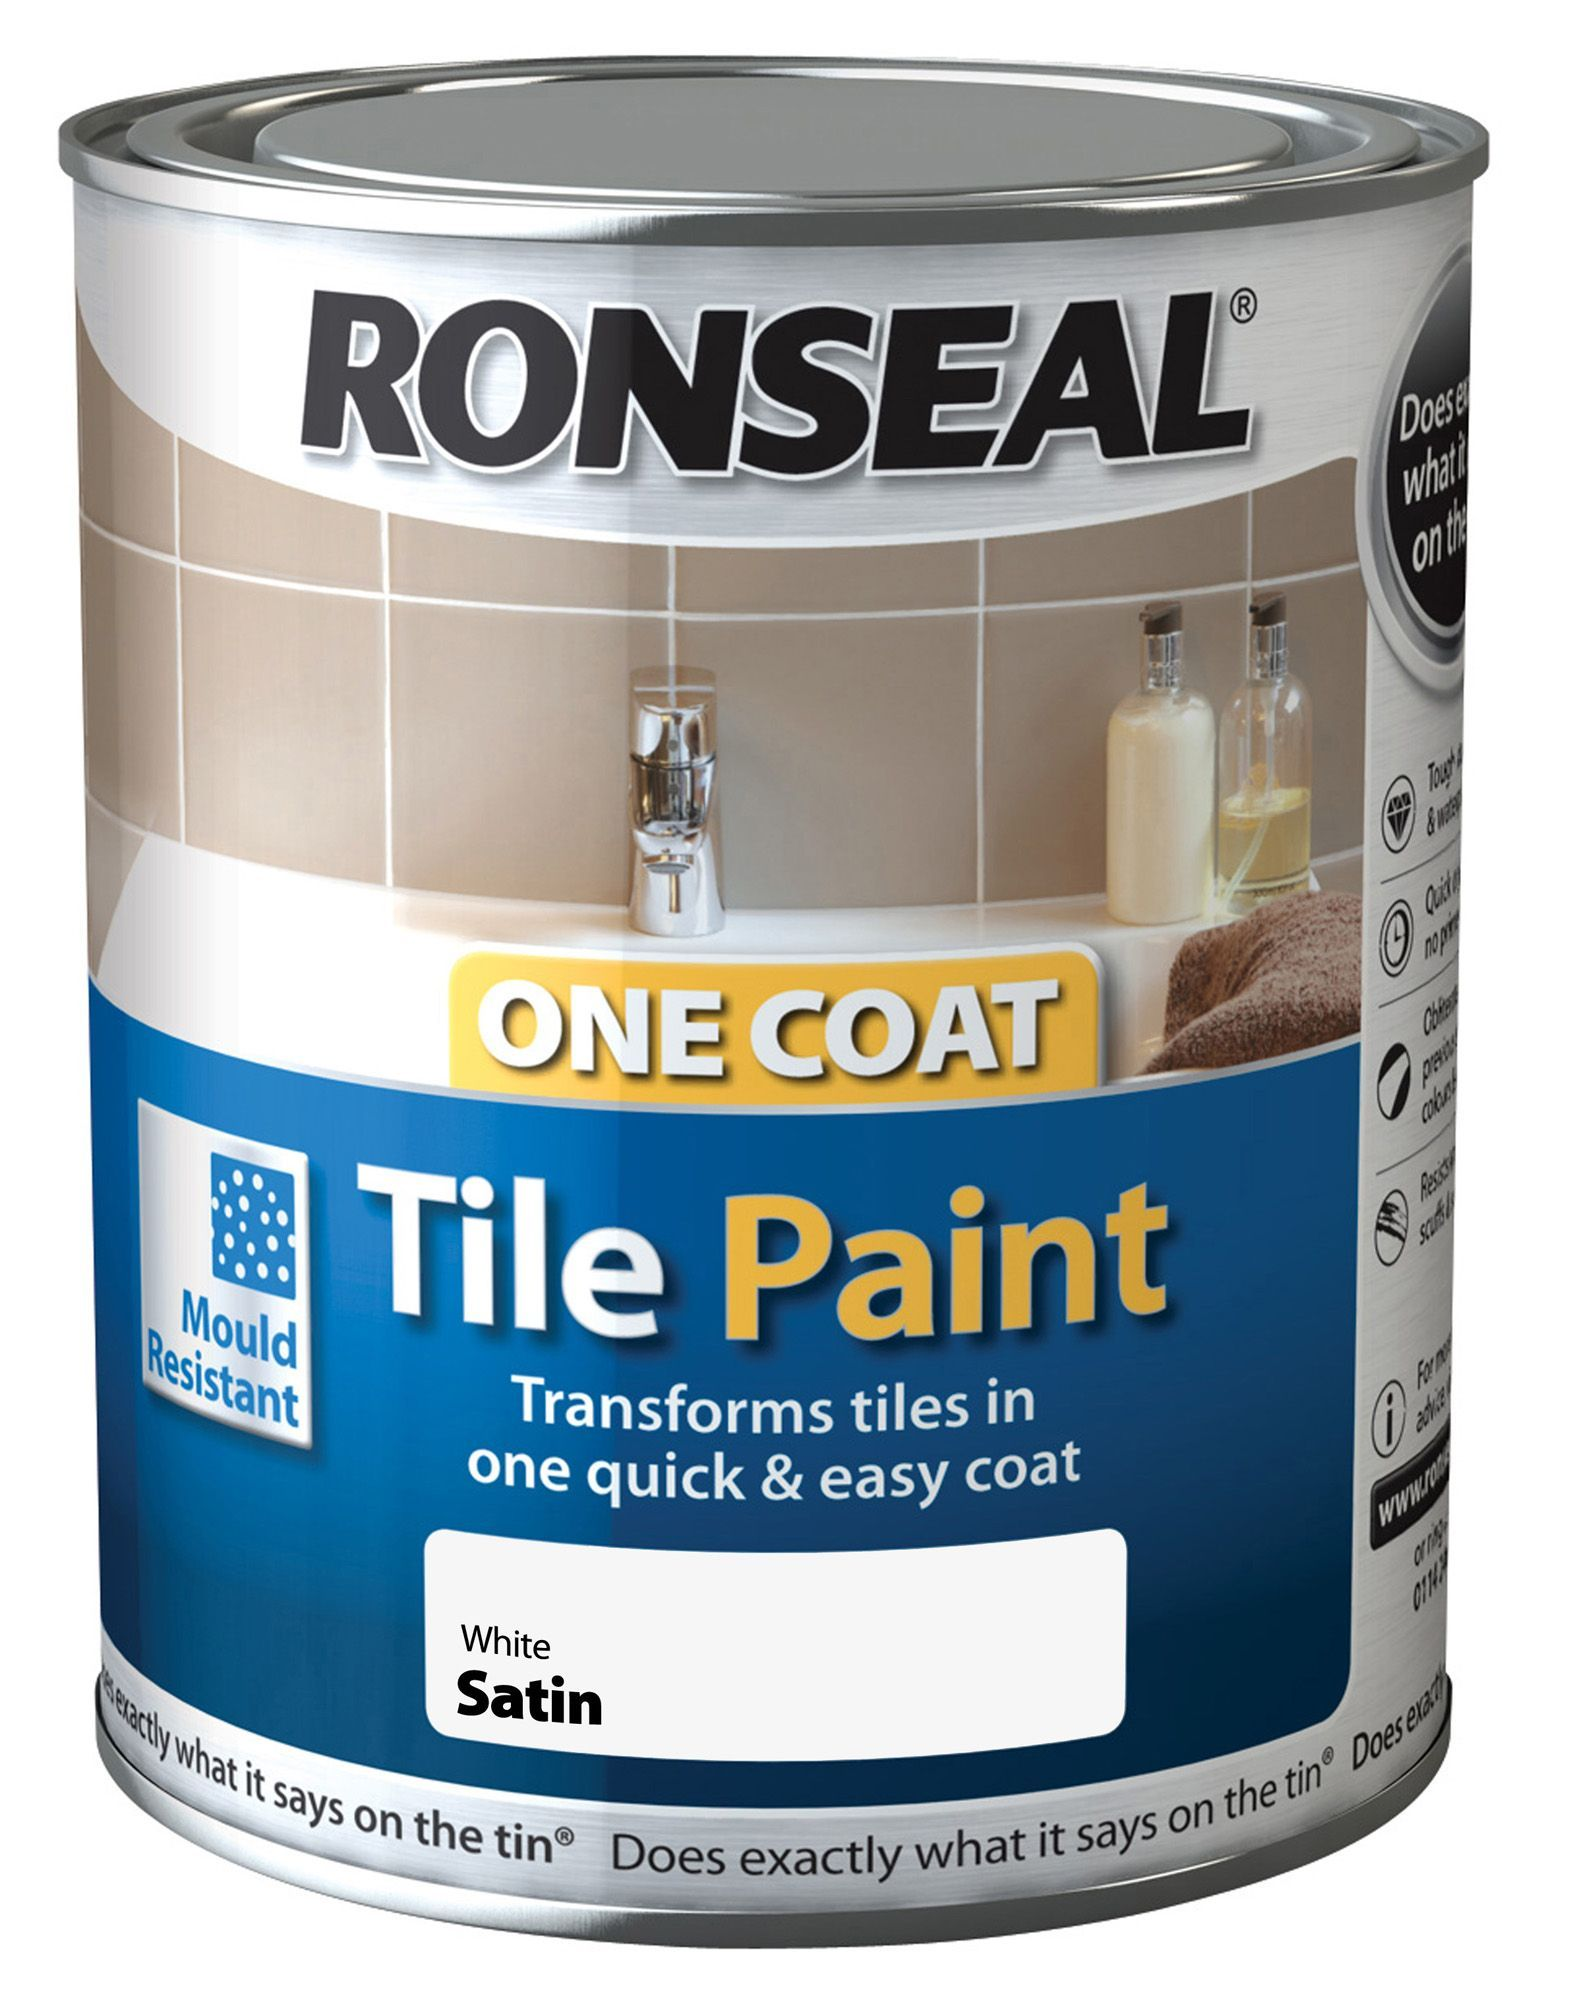 Ronseal One Coat White Satin Tile Paint 750ml Departments Diy At B Q